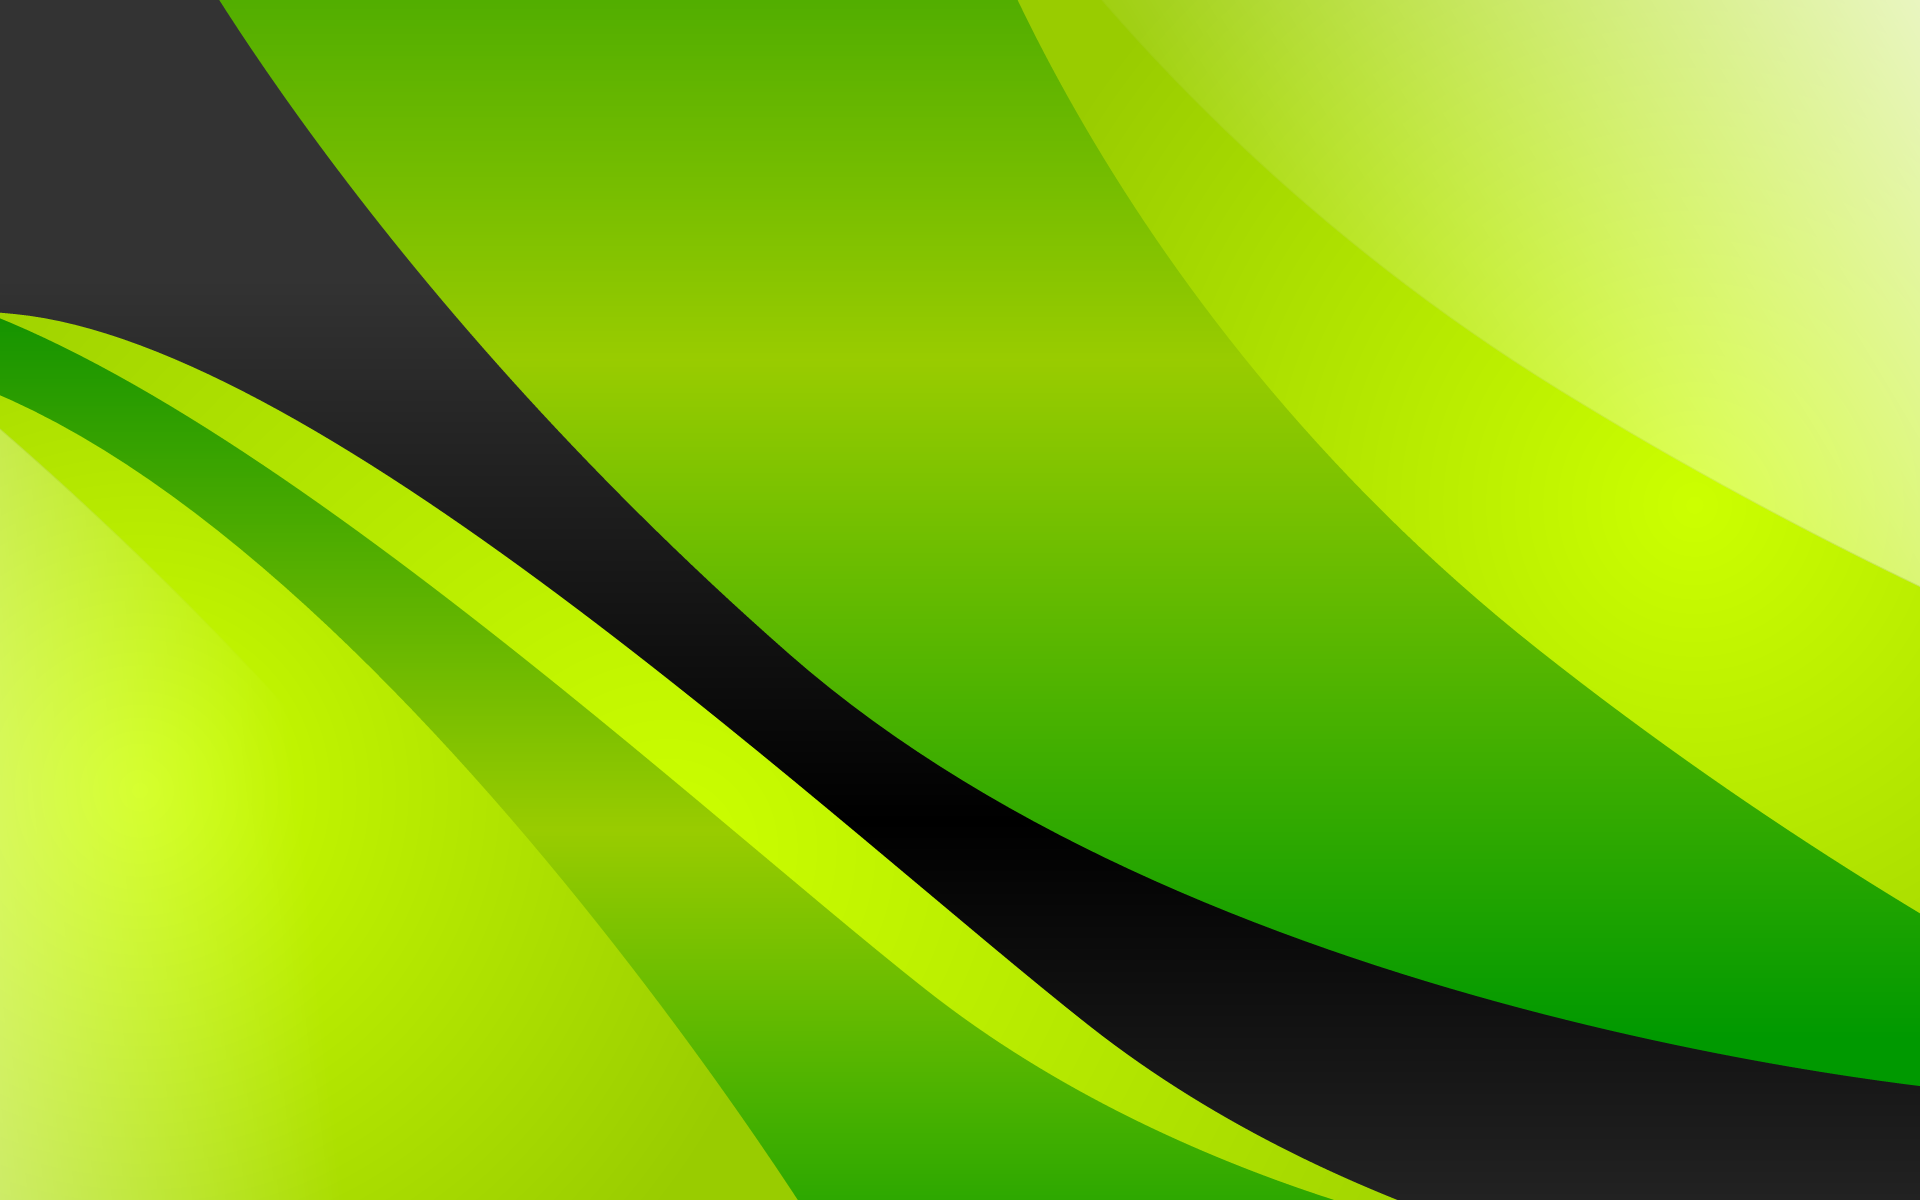 Green Abstract Wallpapers - Full HD wallpaper search